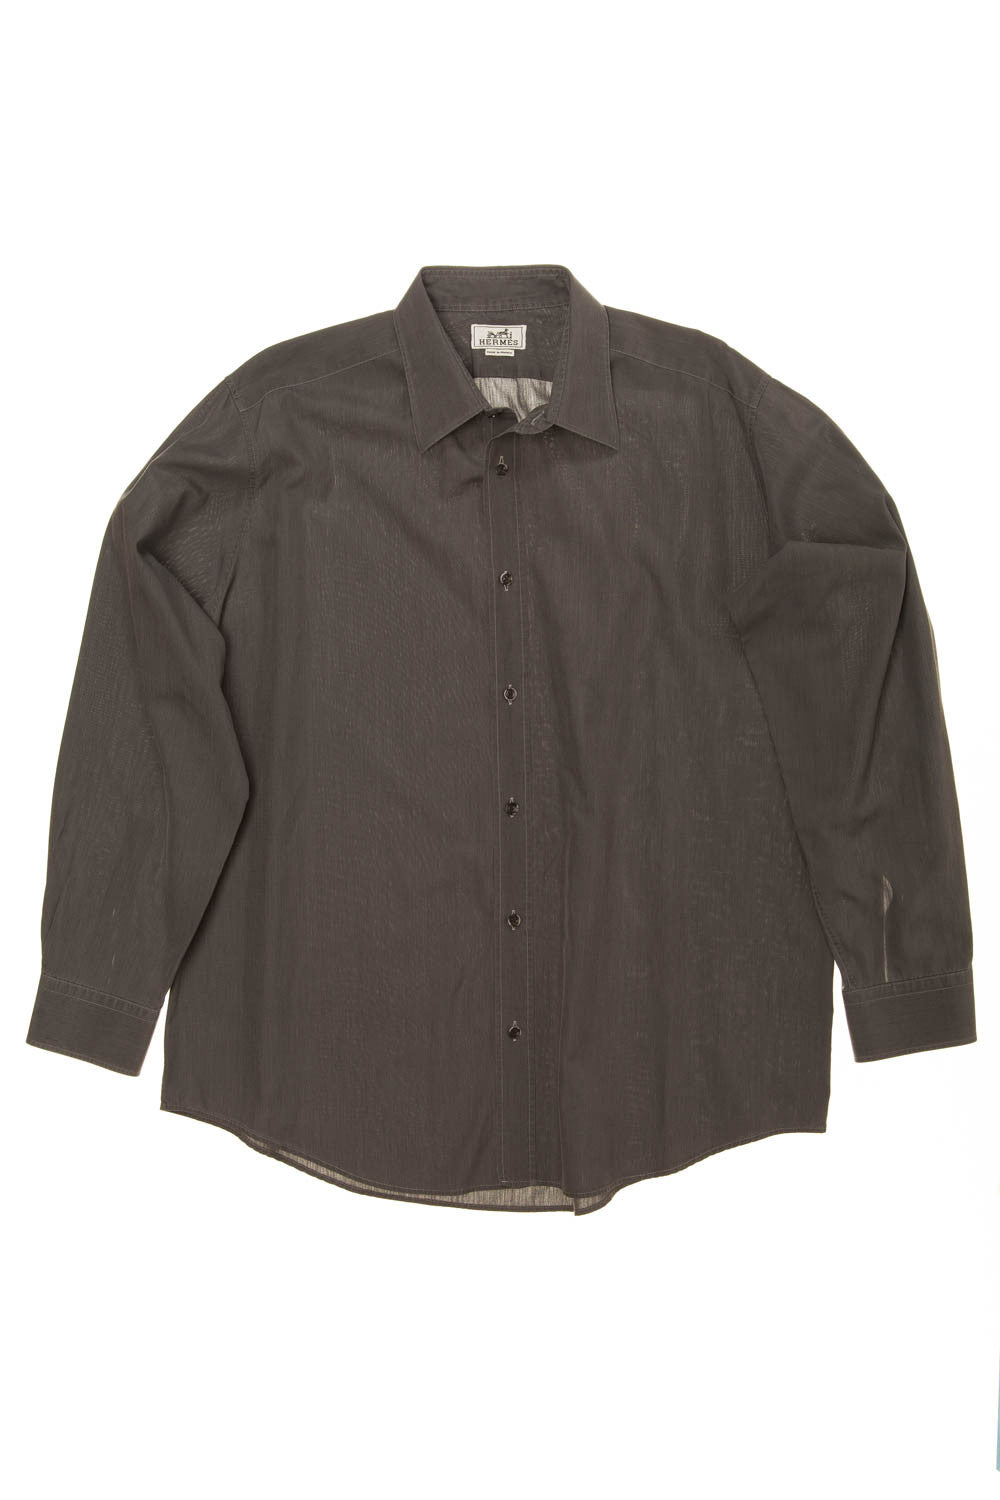 Hermes - Dark Grey Men's Dress Shirt - IT 42